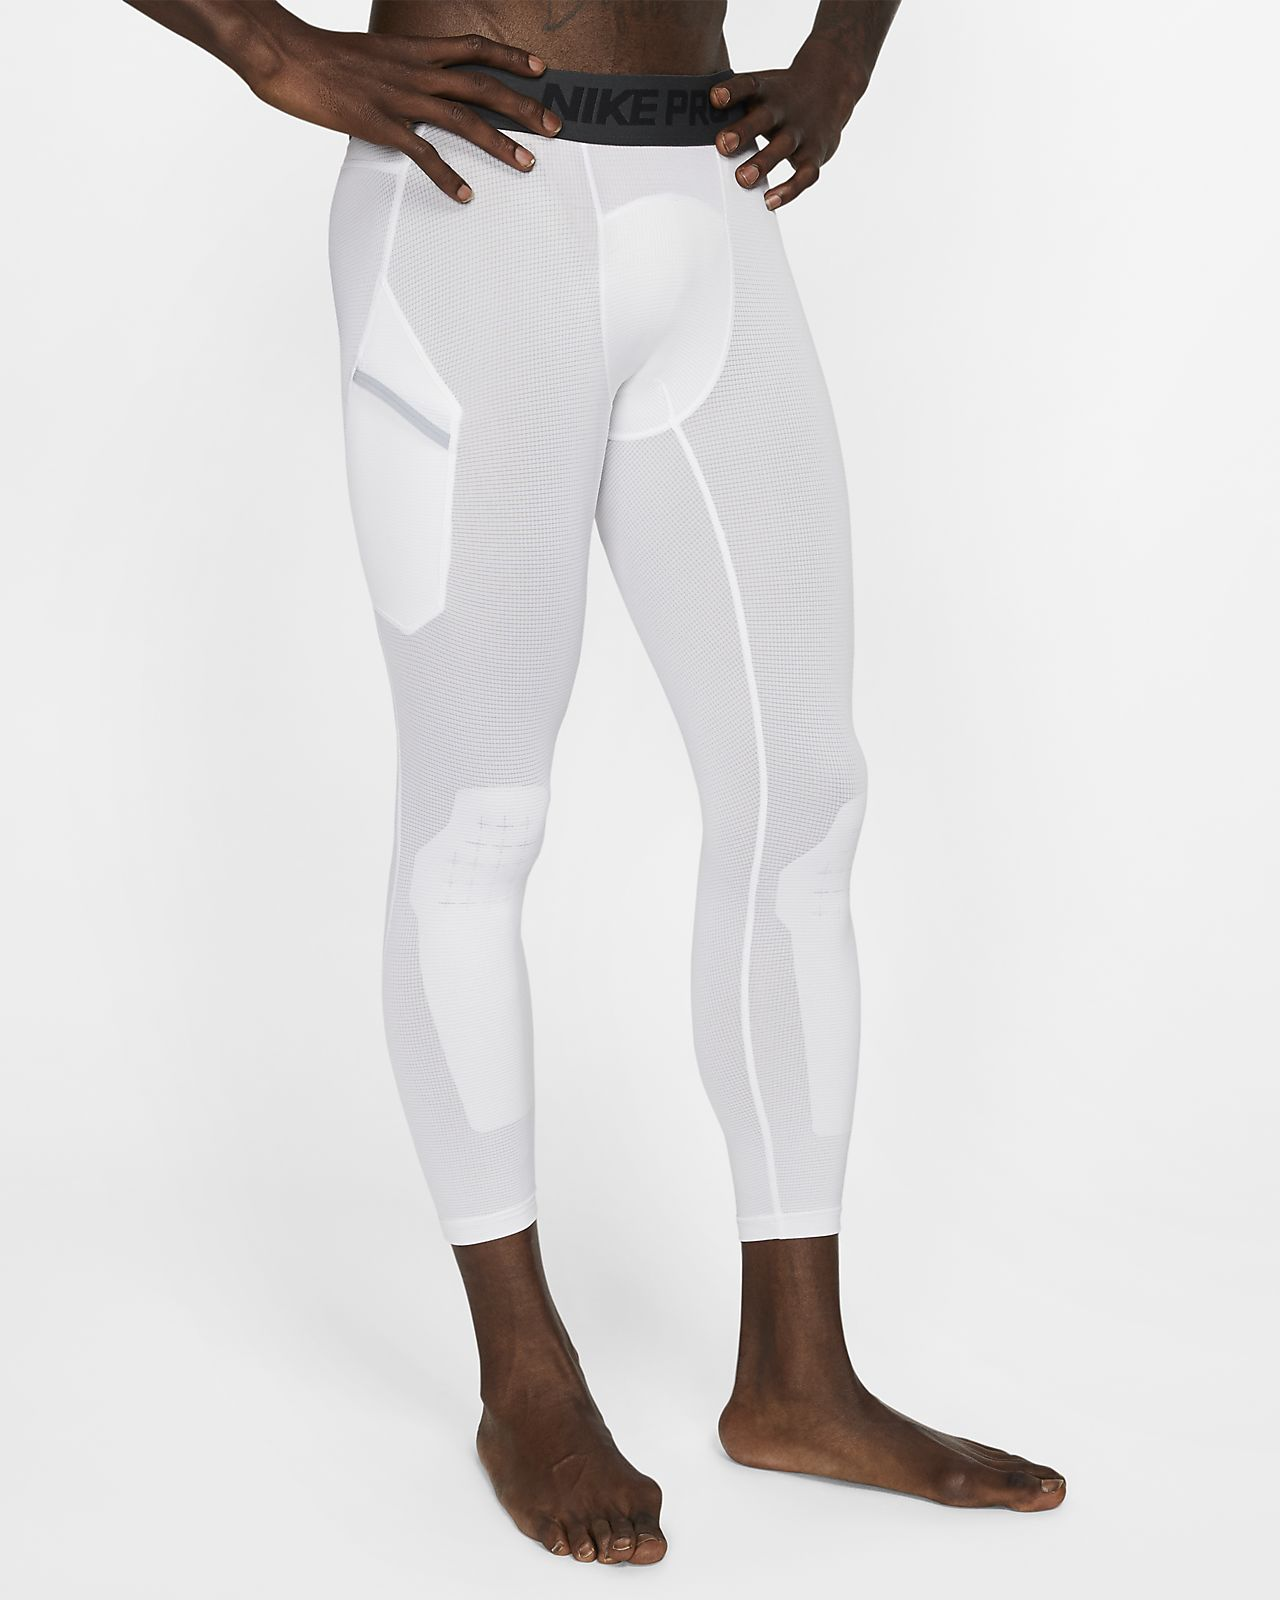 3/4 nike leggings